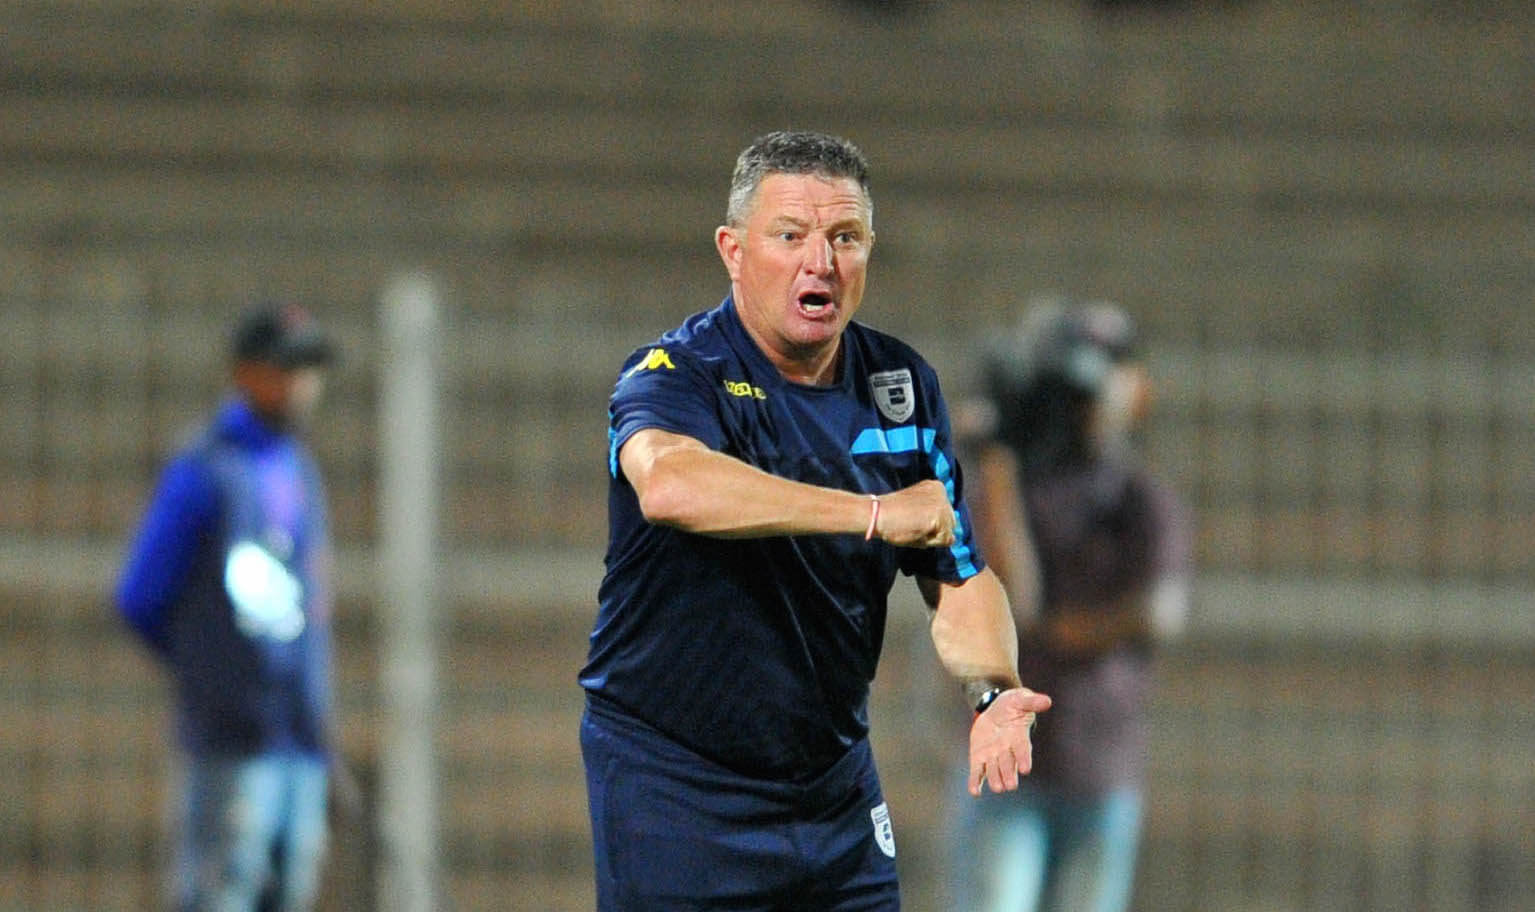 Gavin Hunt coaching the Bidvest Wits in the PSL